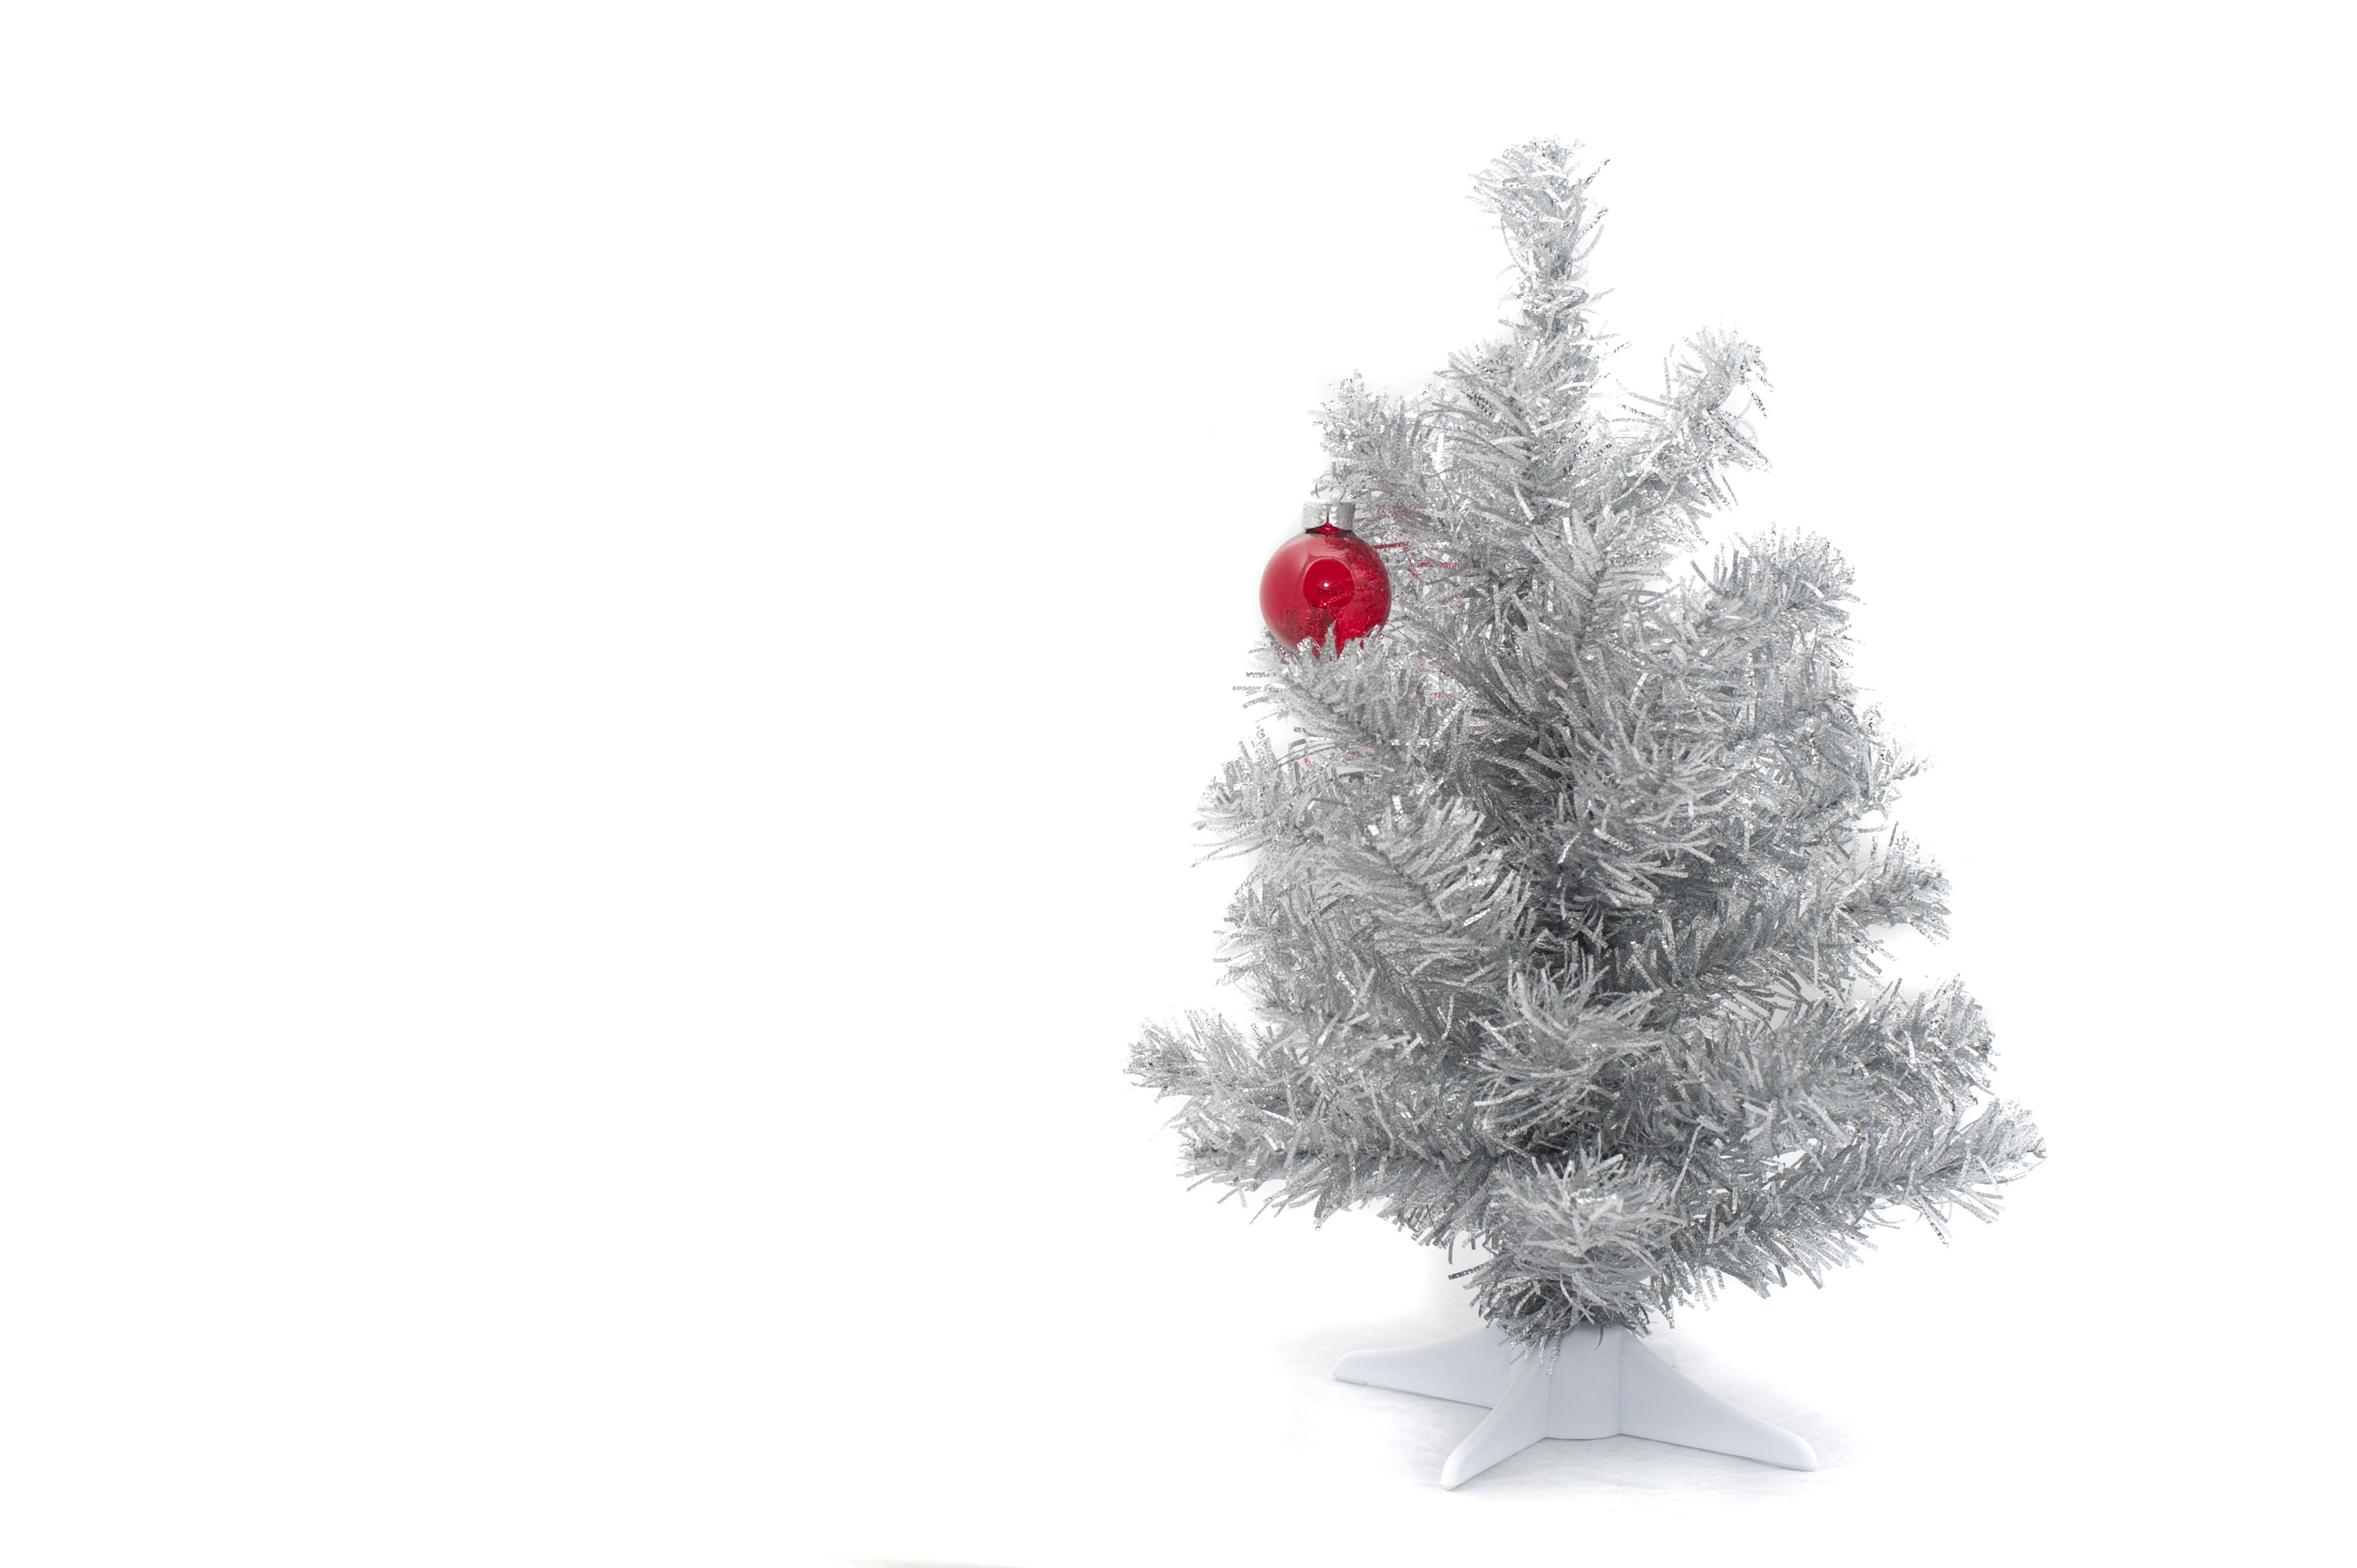 austere christmas, an artifcial christmas tree and a single red decoration